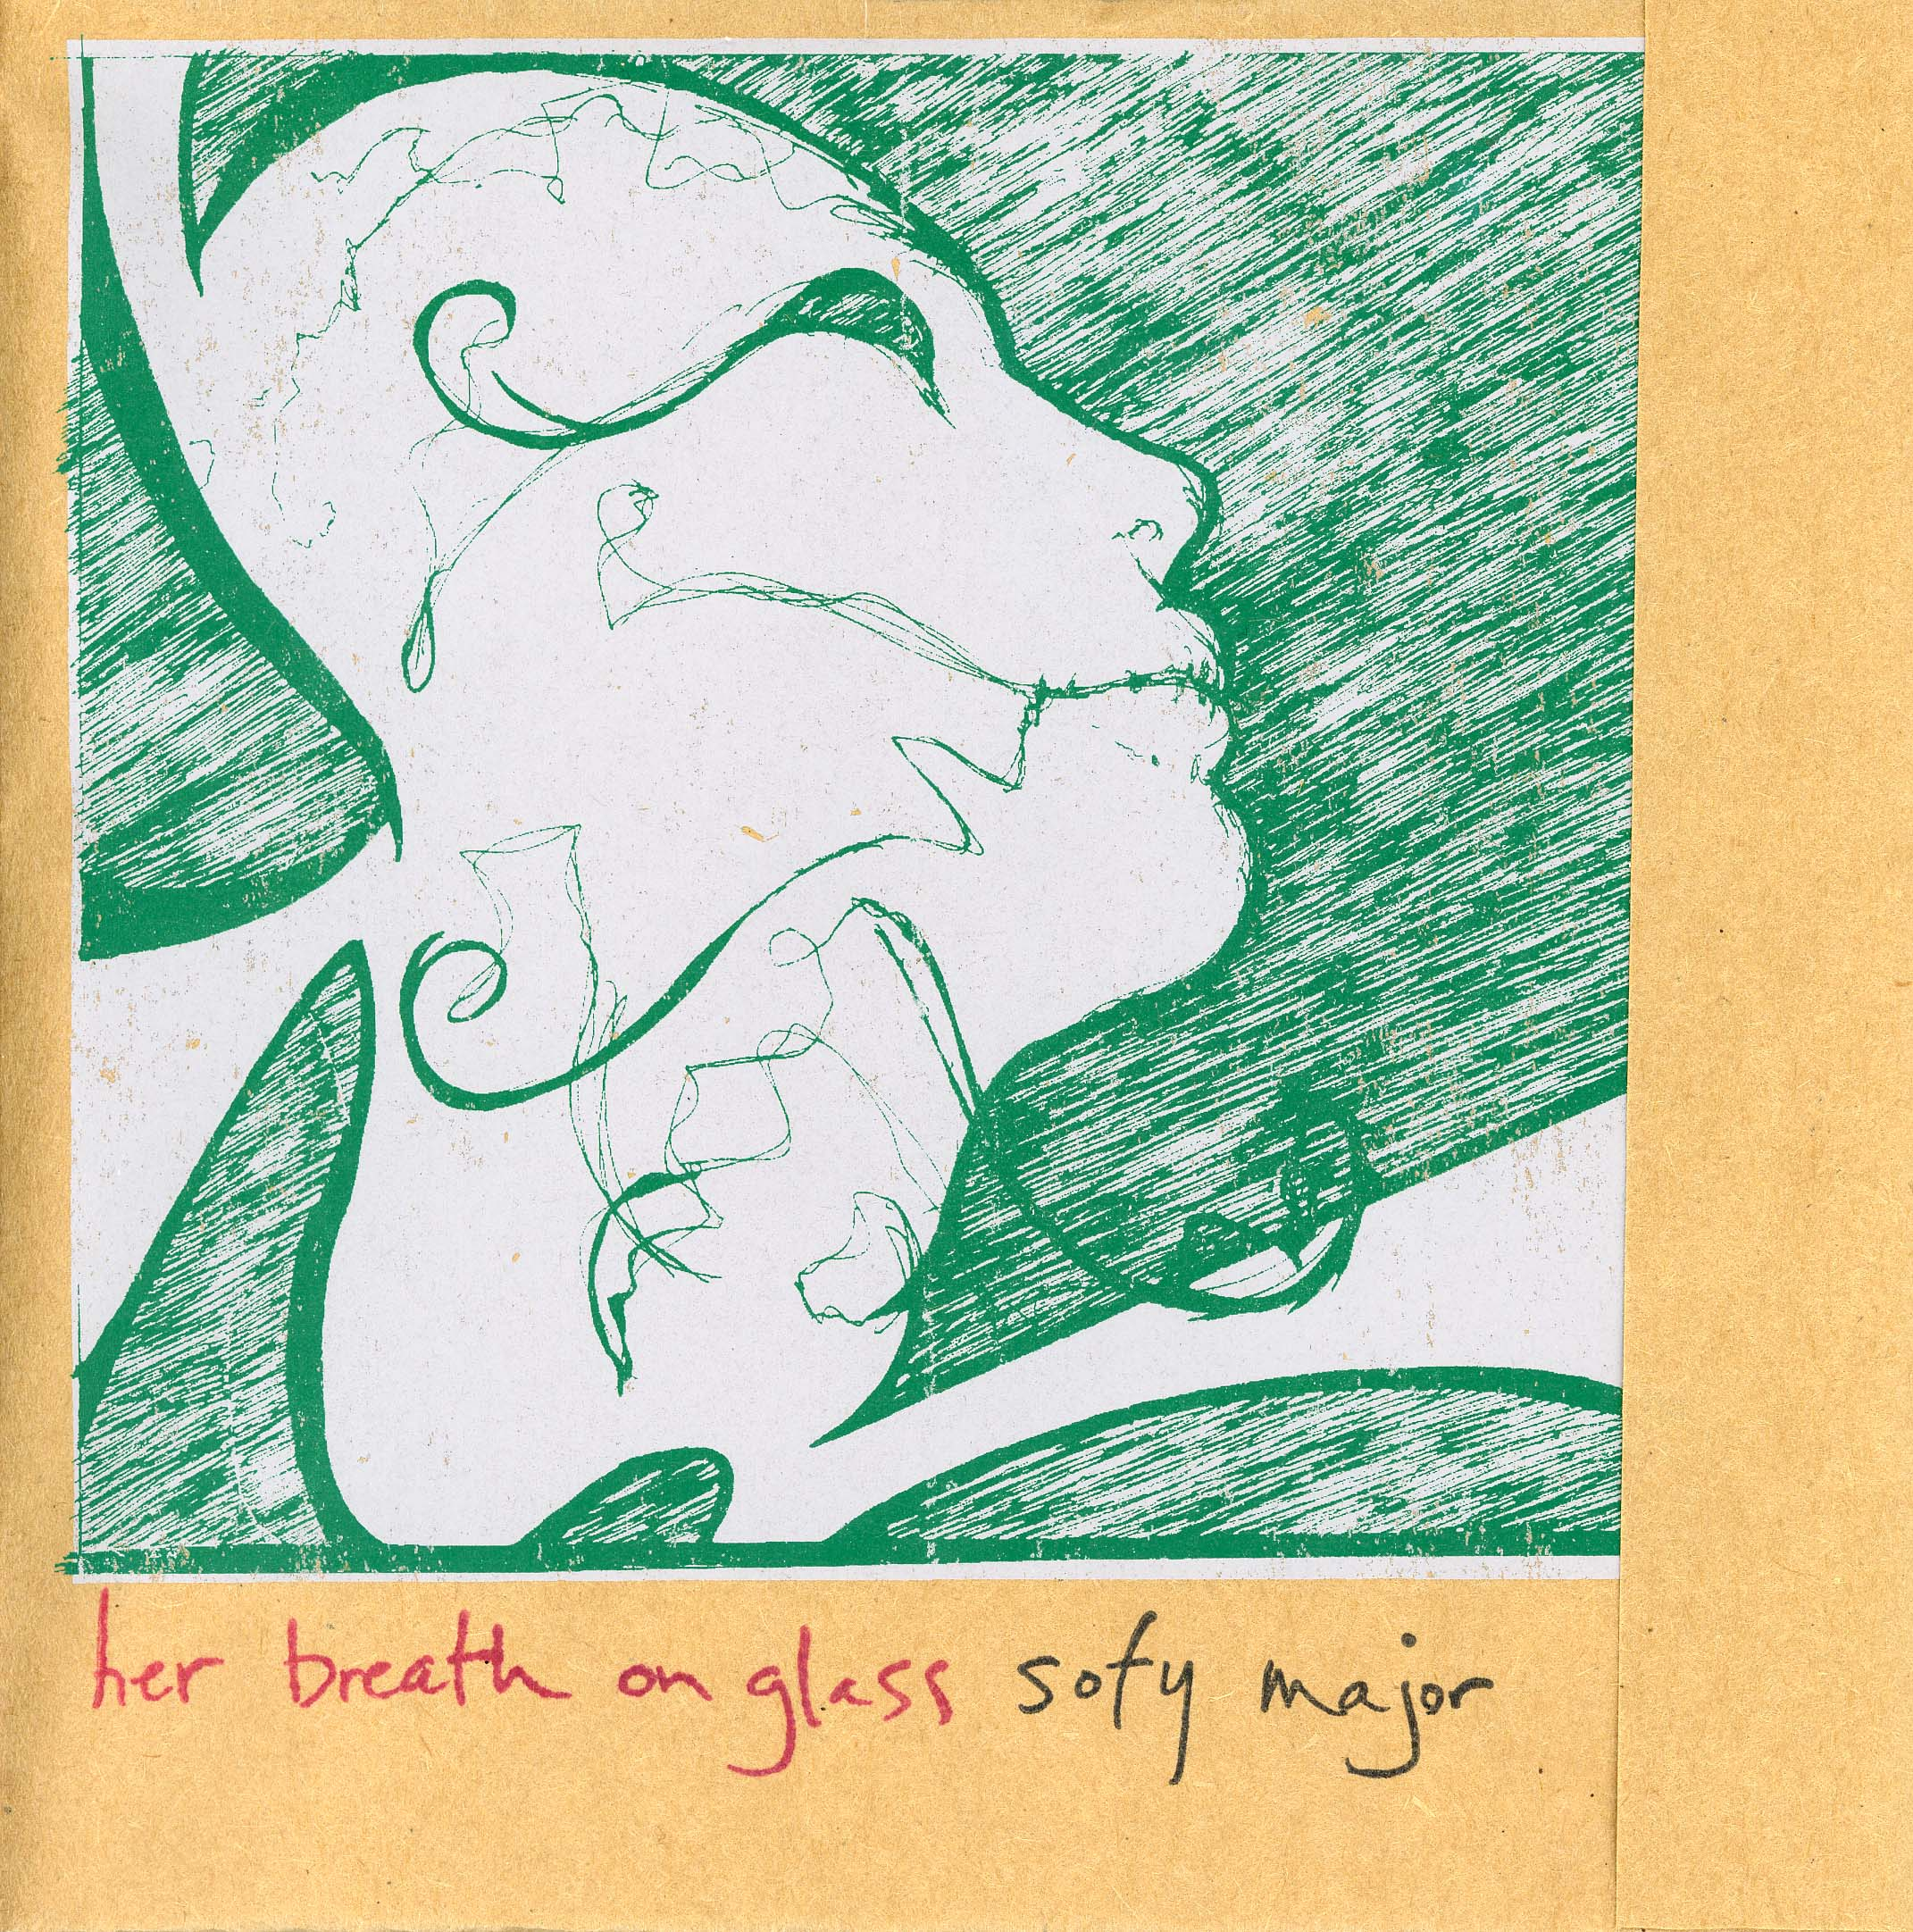 Sofy Major - Her Breath On Glass - split